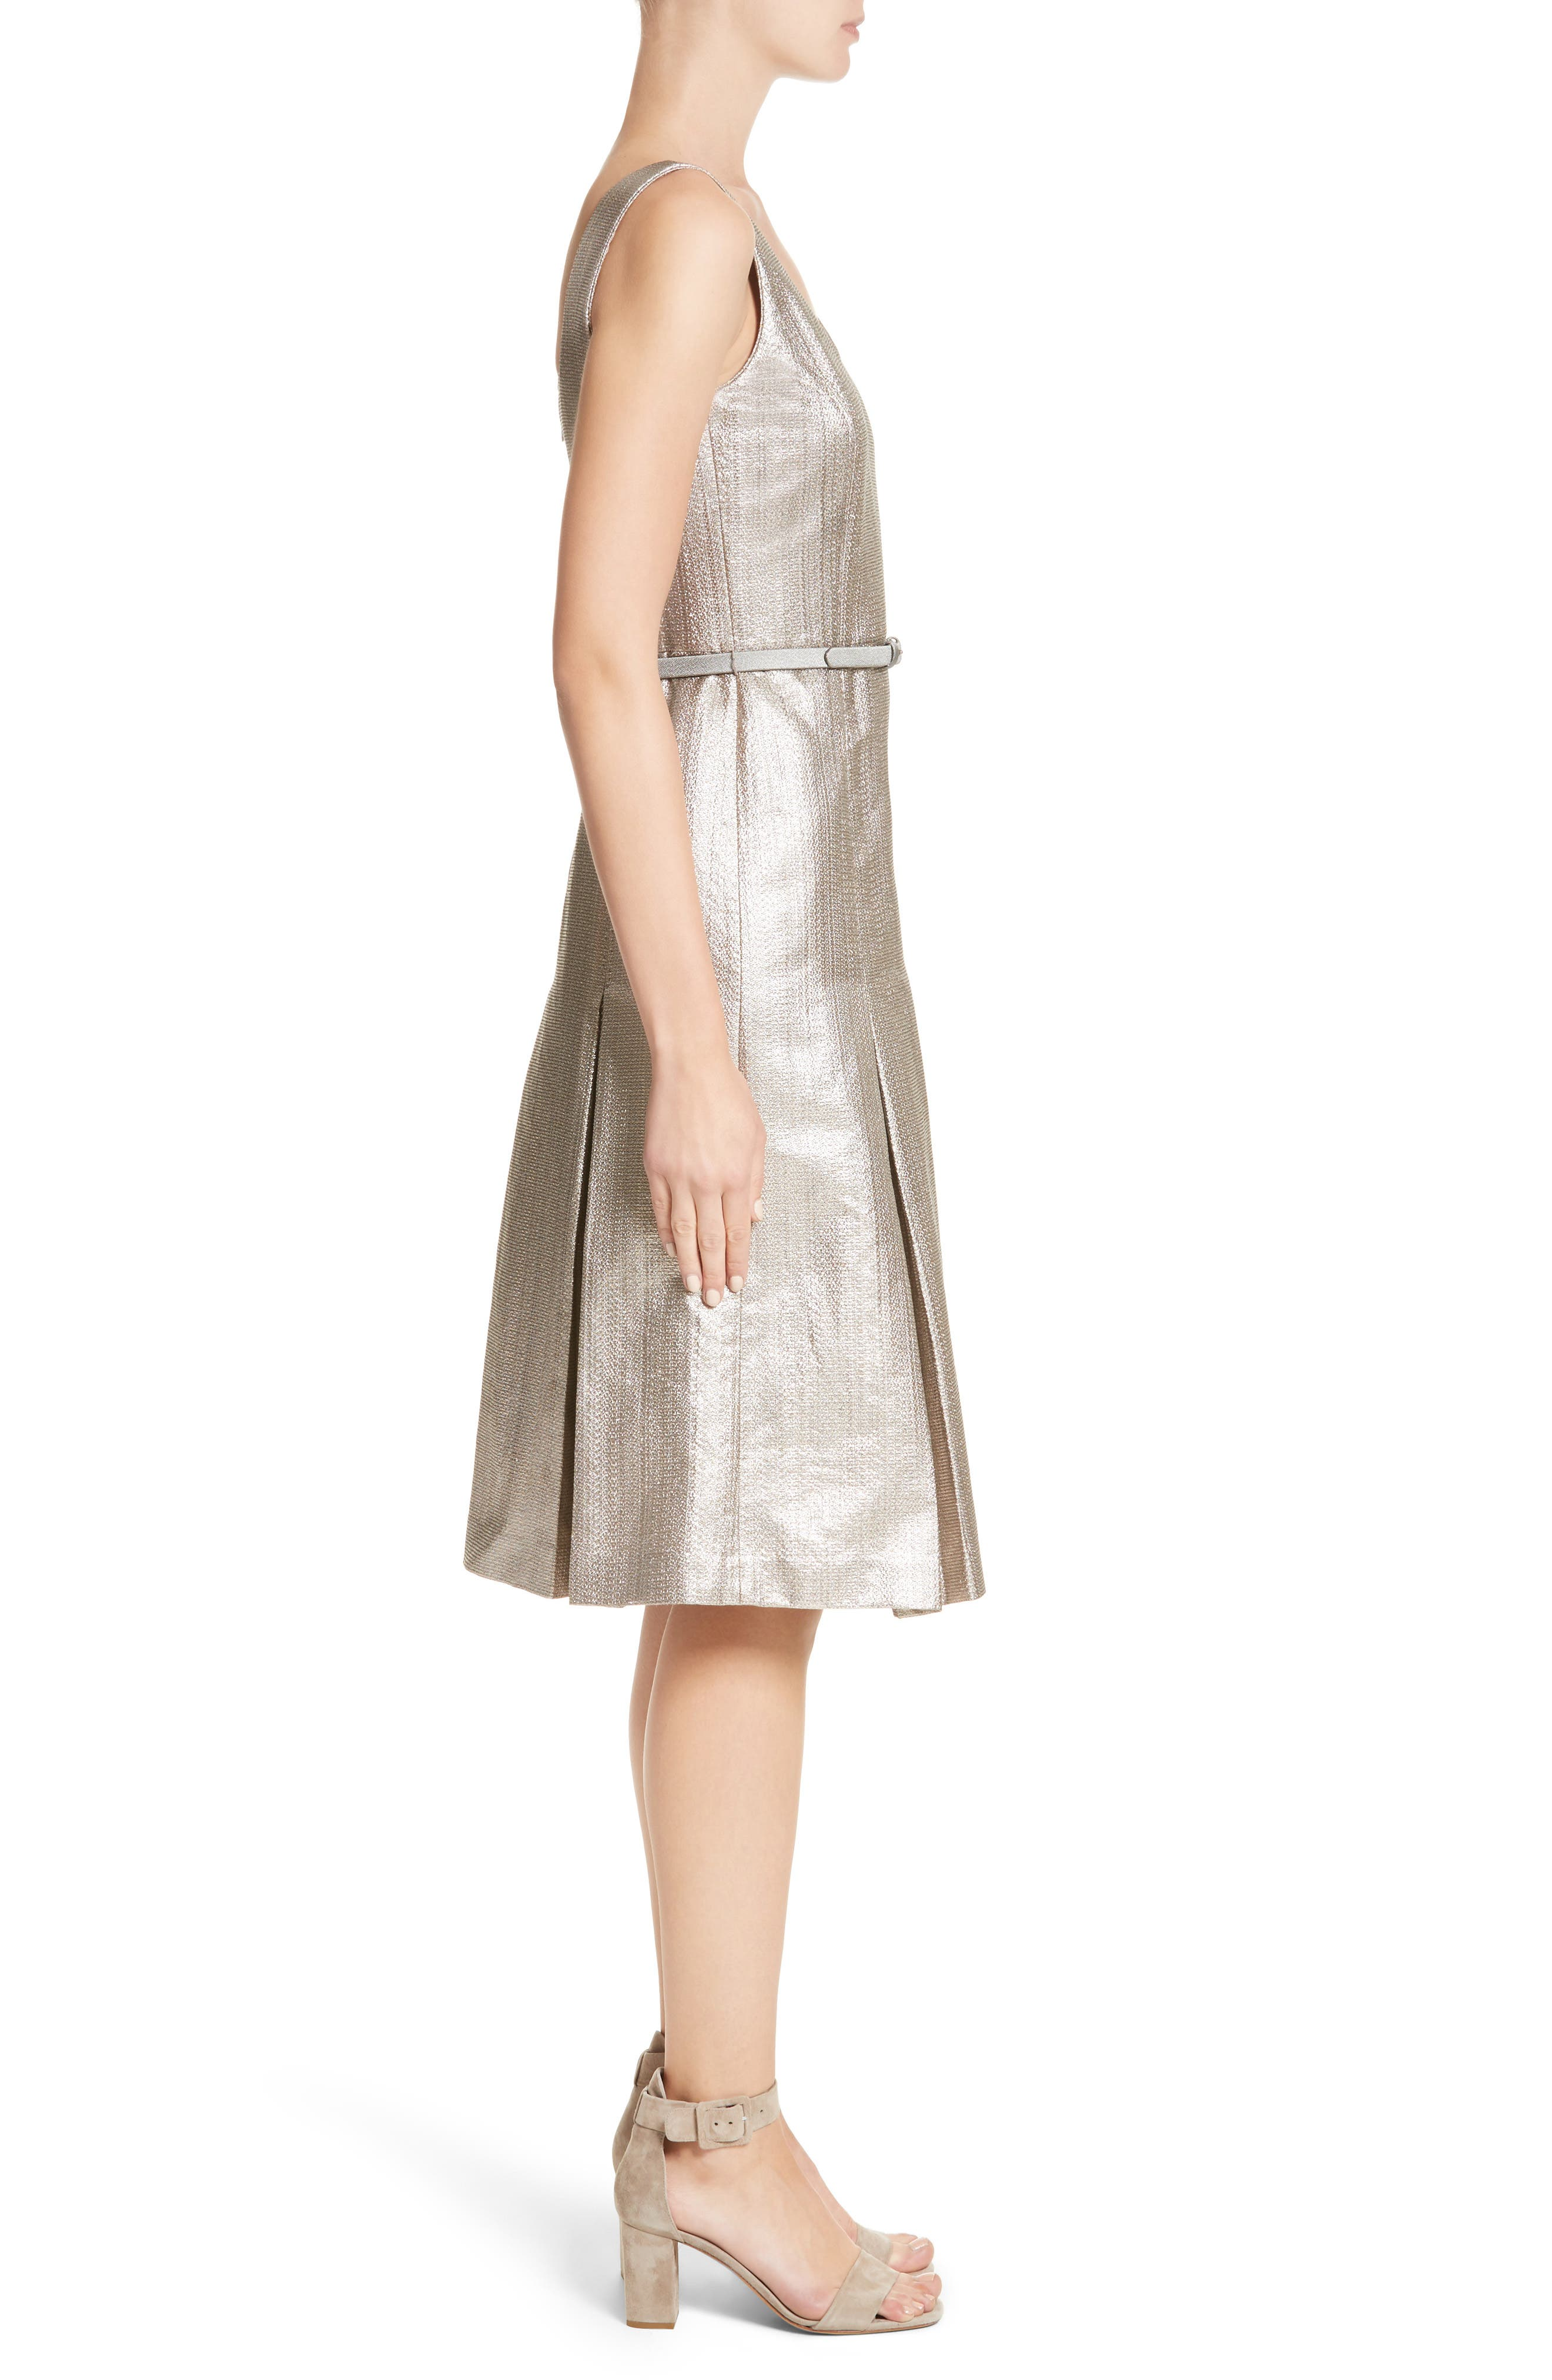 Lois Ceremonial Cloth Dress,                             Alternate thumbnail 3, color,                             Oyster Metallic